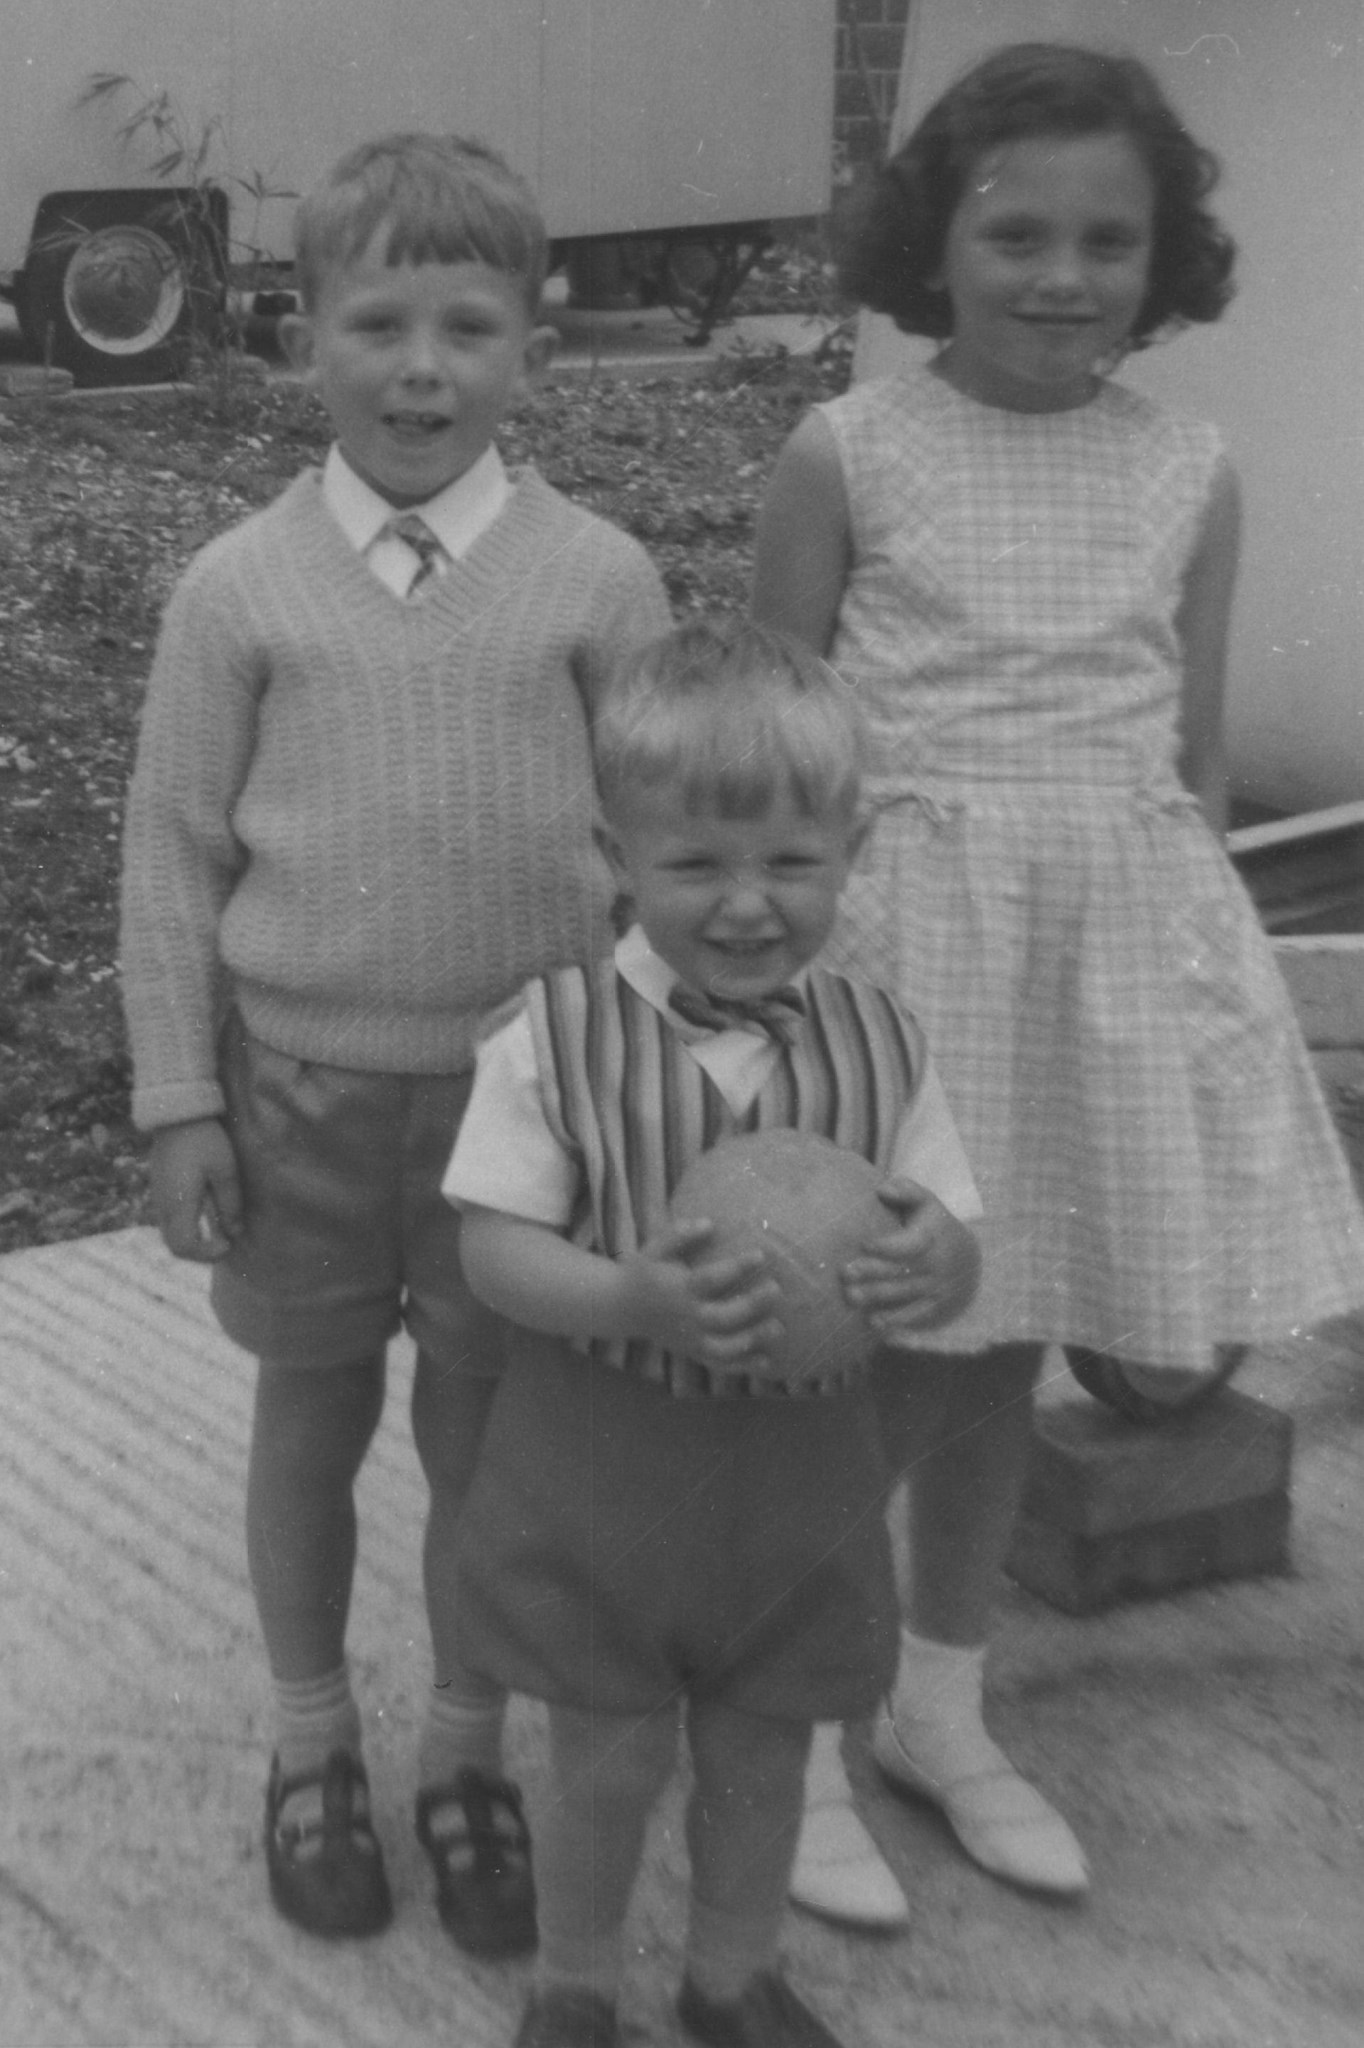 John with ball and waistcoat with brother Paul and cousin Hazel